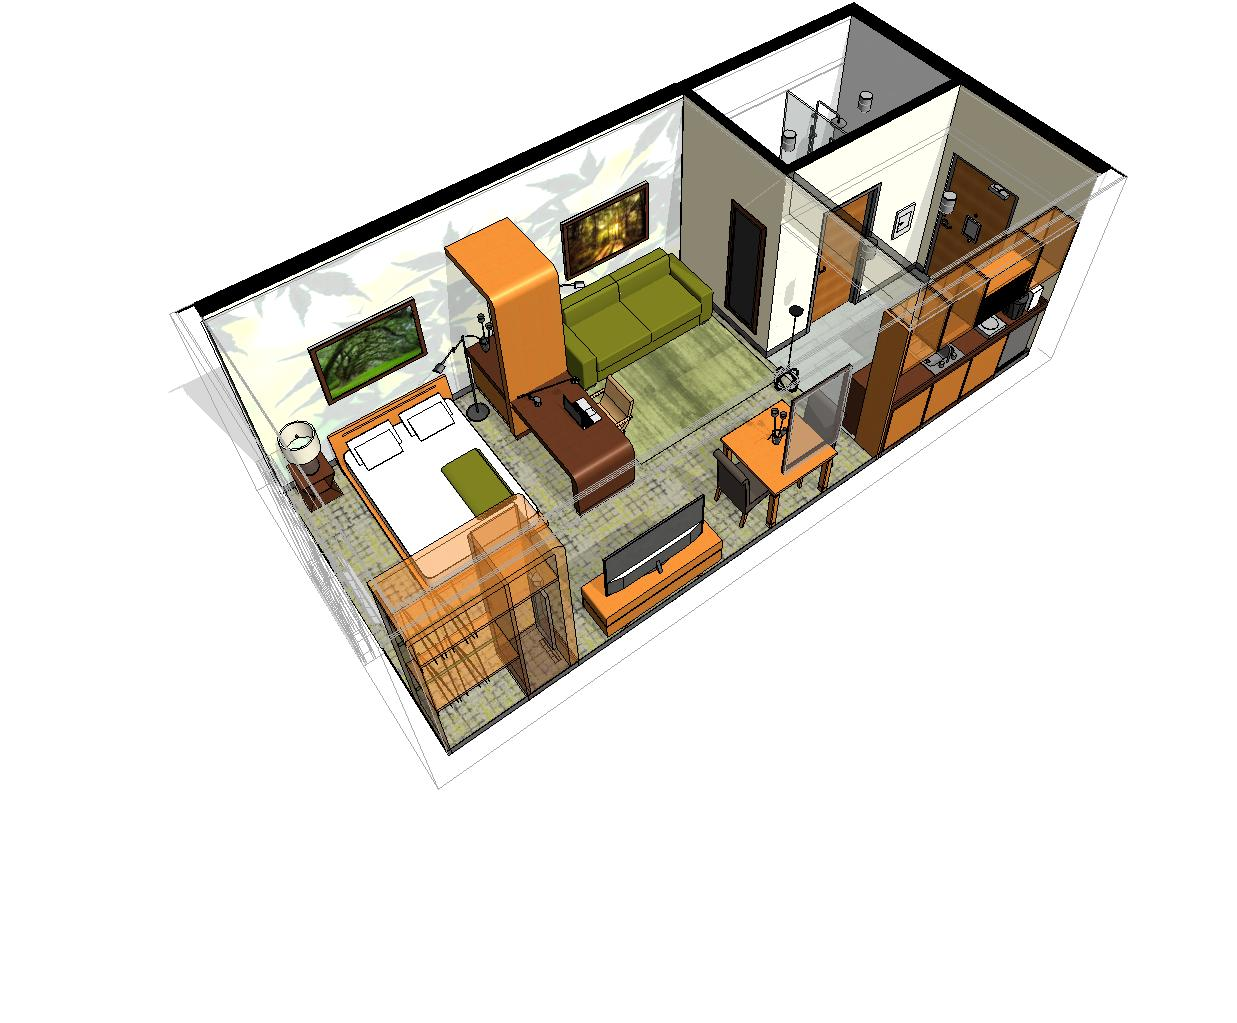 Prototype Room_02 - 3D View - Option A - 3D View 2.jpg